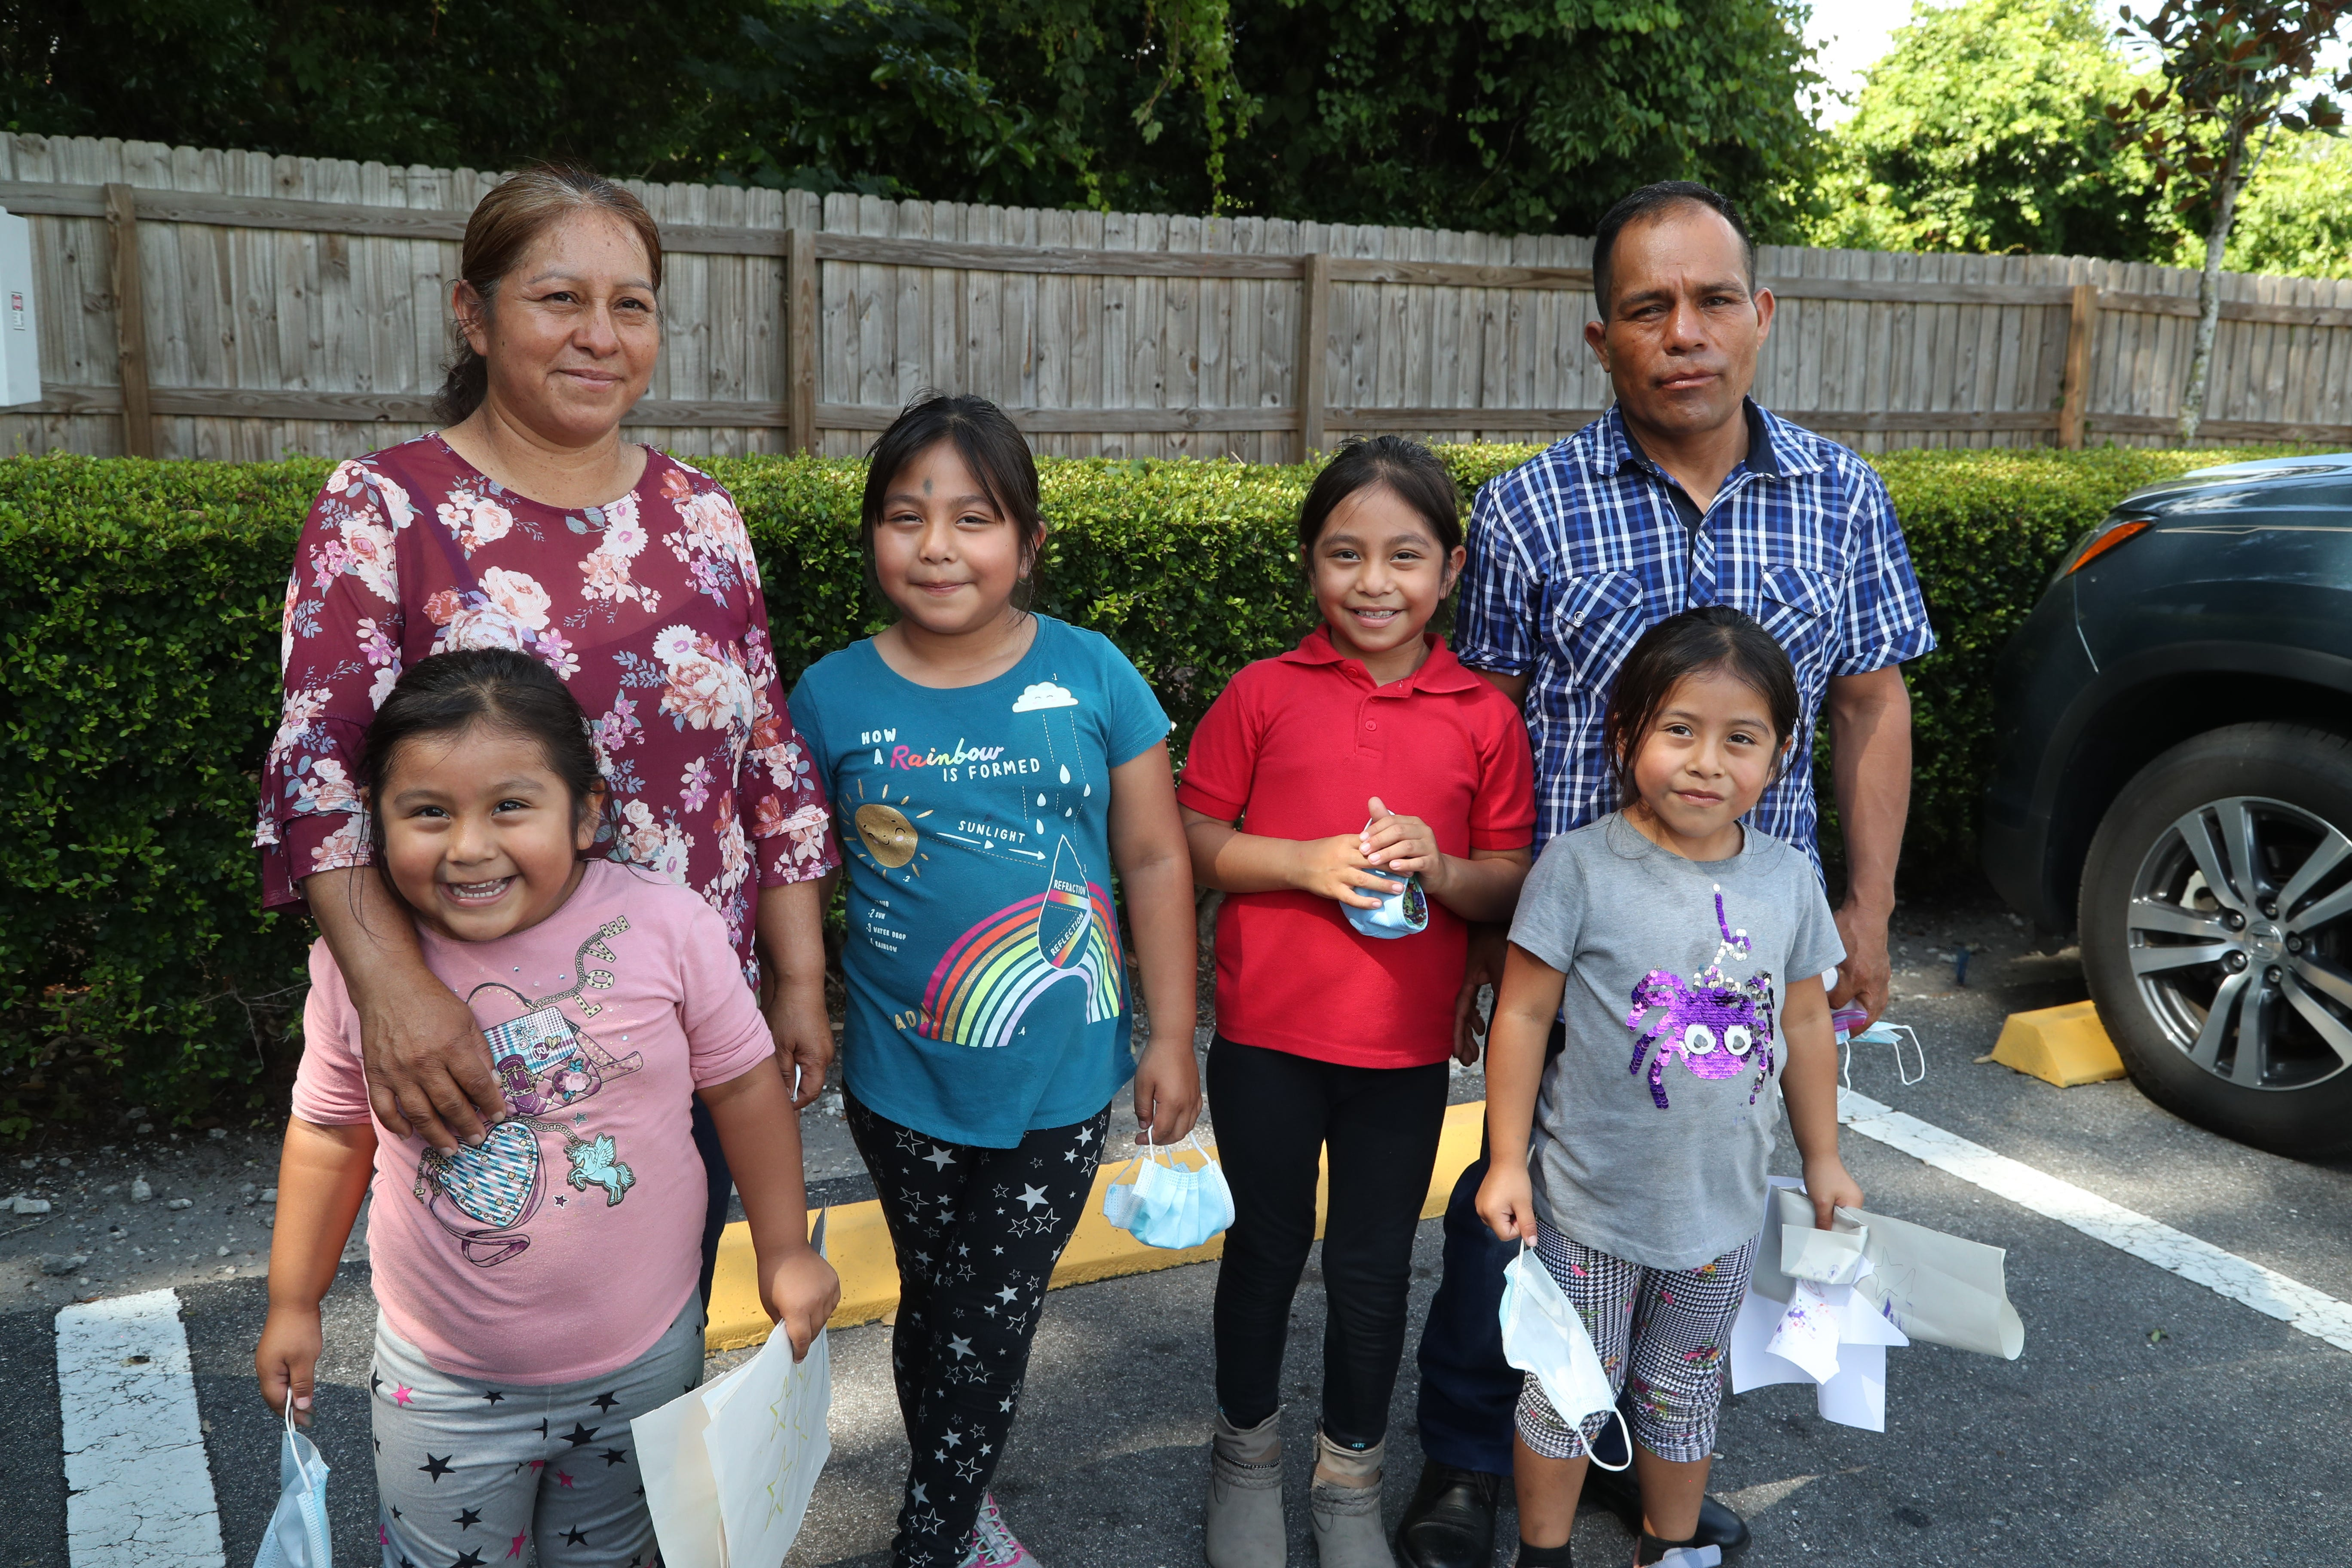 Jesus Hernandez and his wife, Julia, both farmworkers in the Plant City area, with their daughters Zaira, 4, Yaretzi, 7, Yareli, 7, and Yulisa, 5. The couple struggled to help their older girls with worksheets sent home when school closed because neither speaks English and homework instructions were in English and their girls don't yet read.